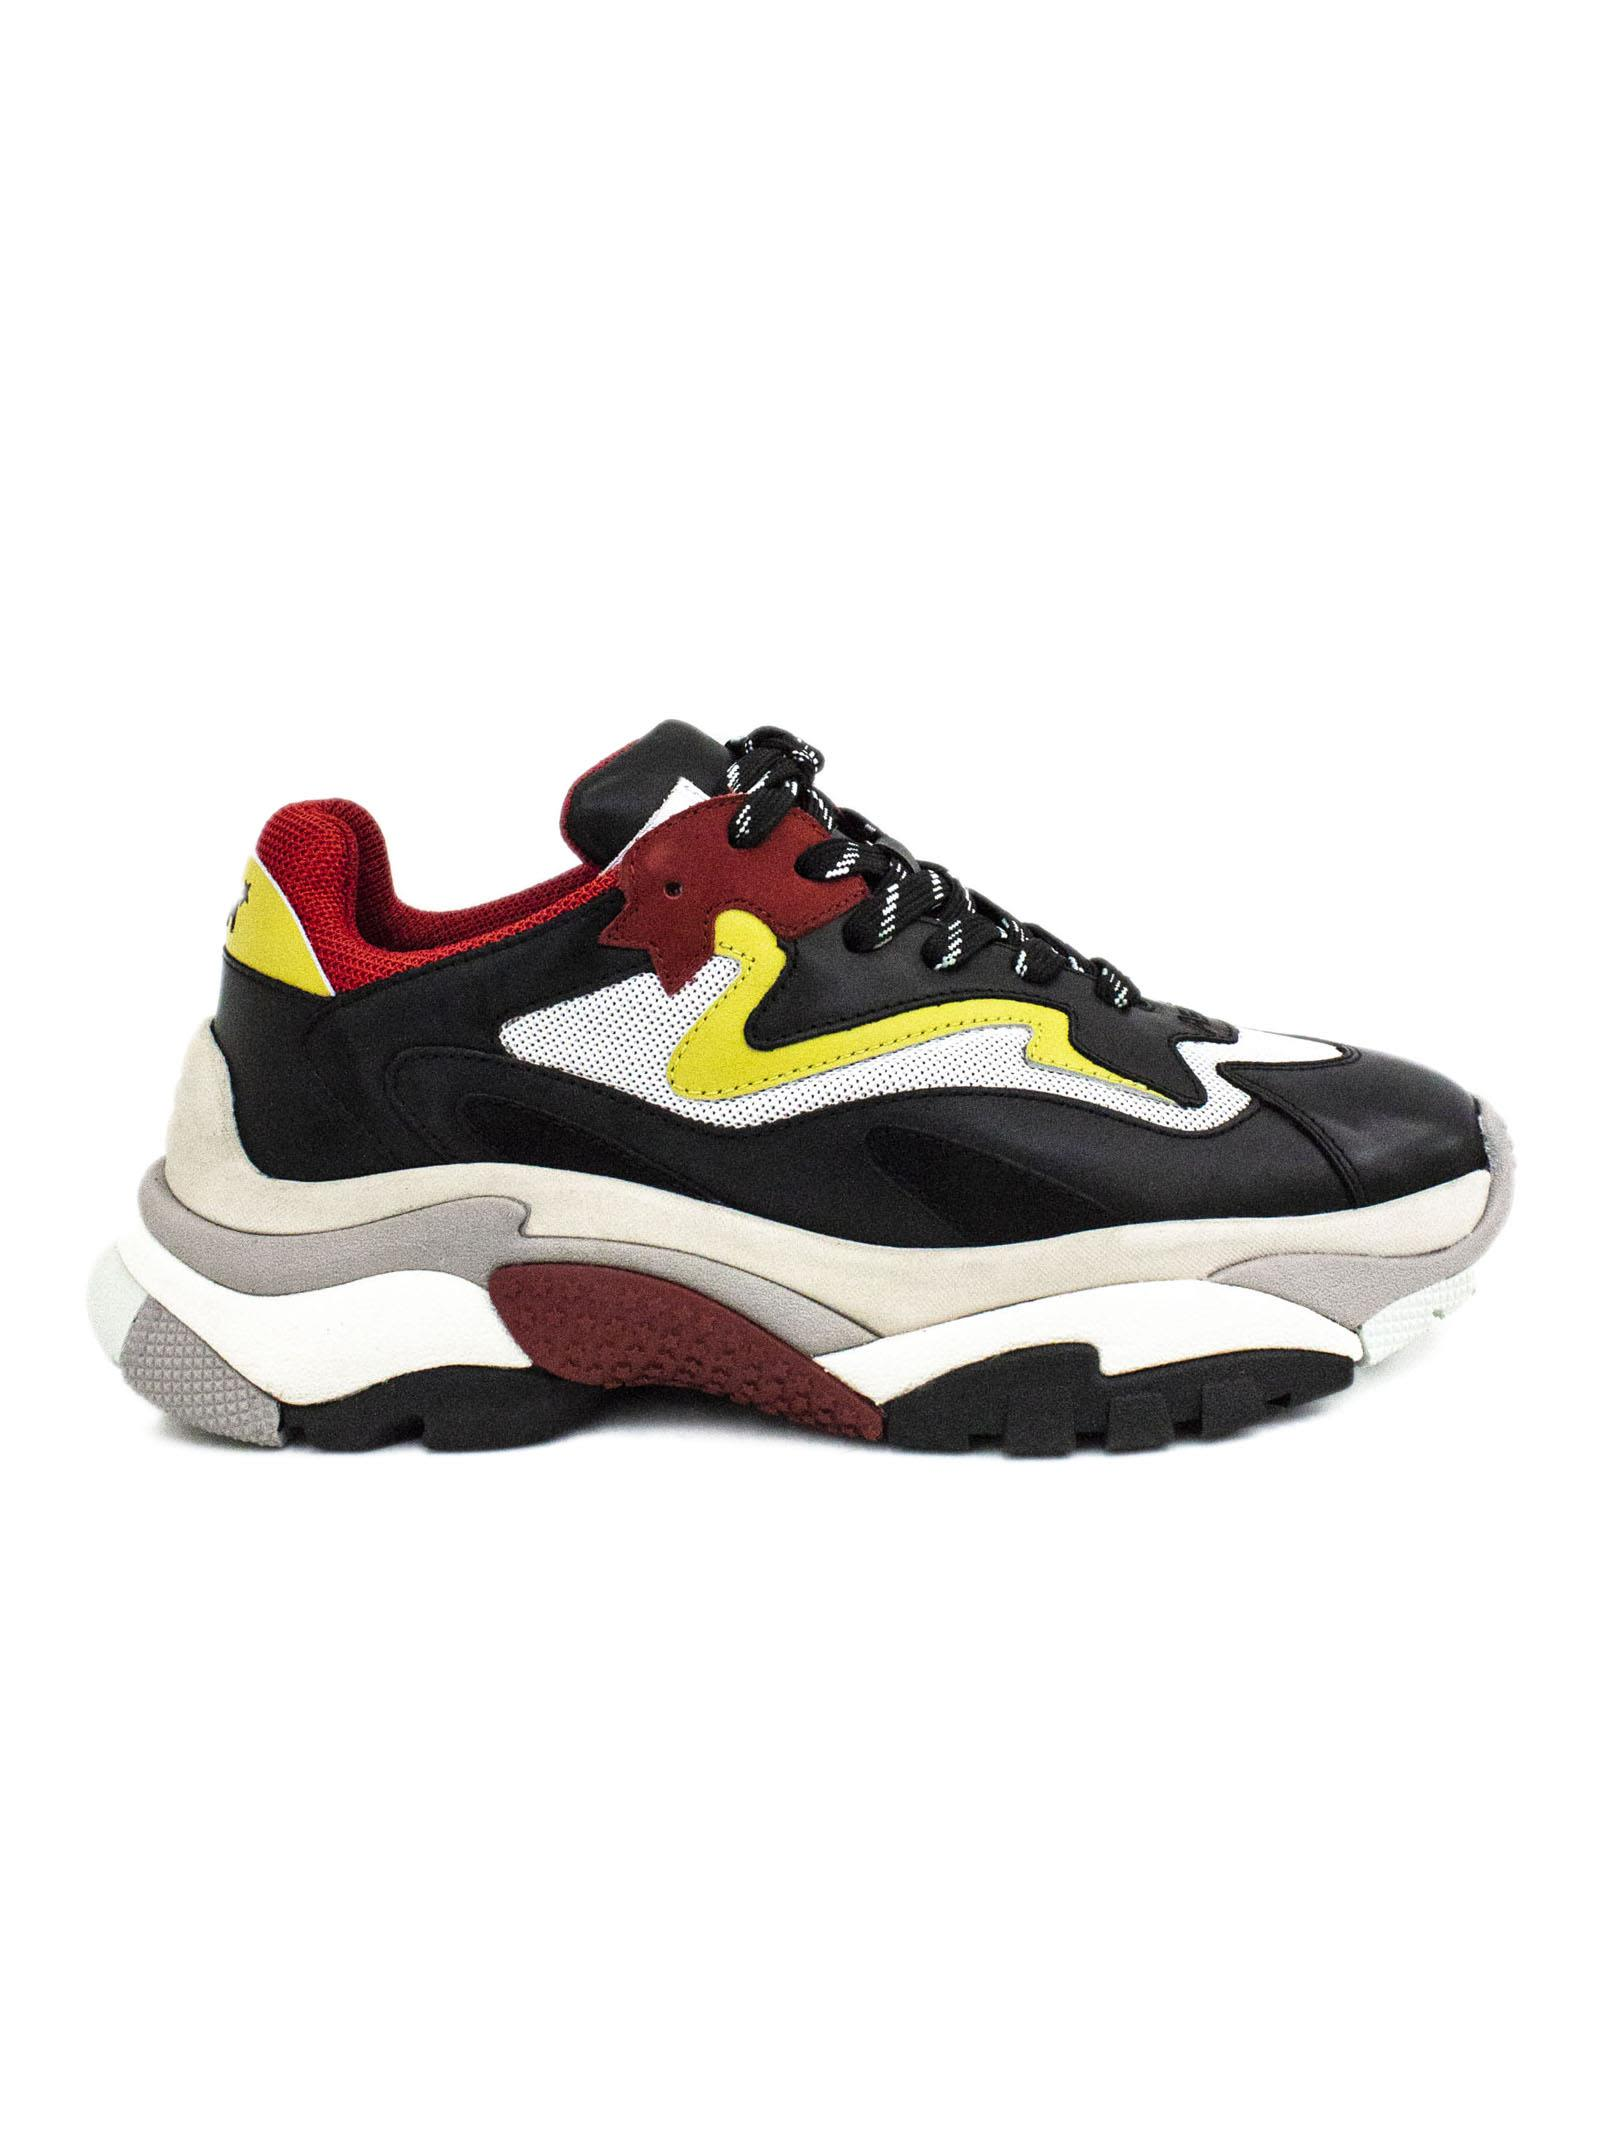 ash -  Multicolor Leather And Fabric Sneaker.